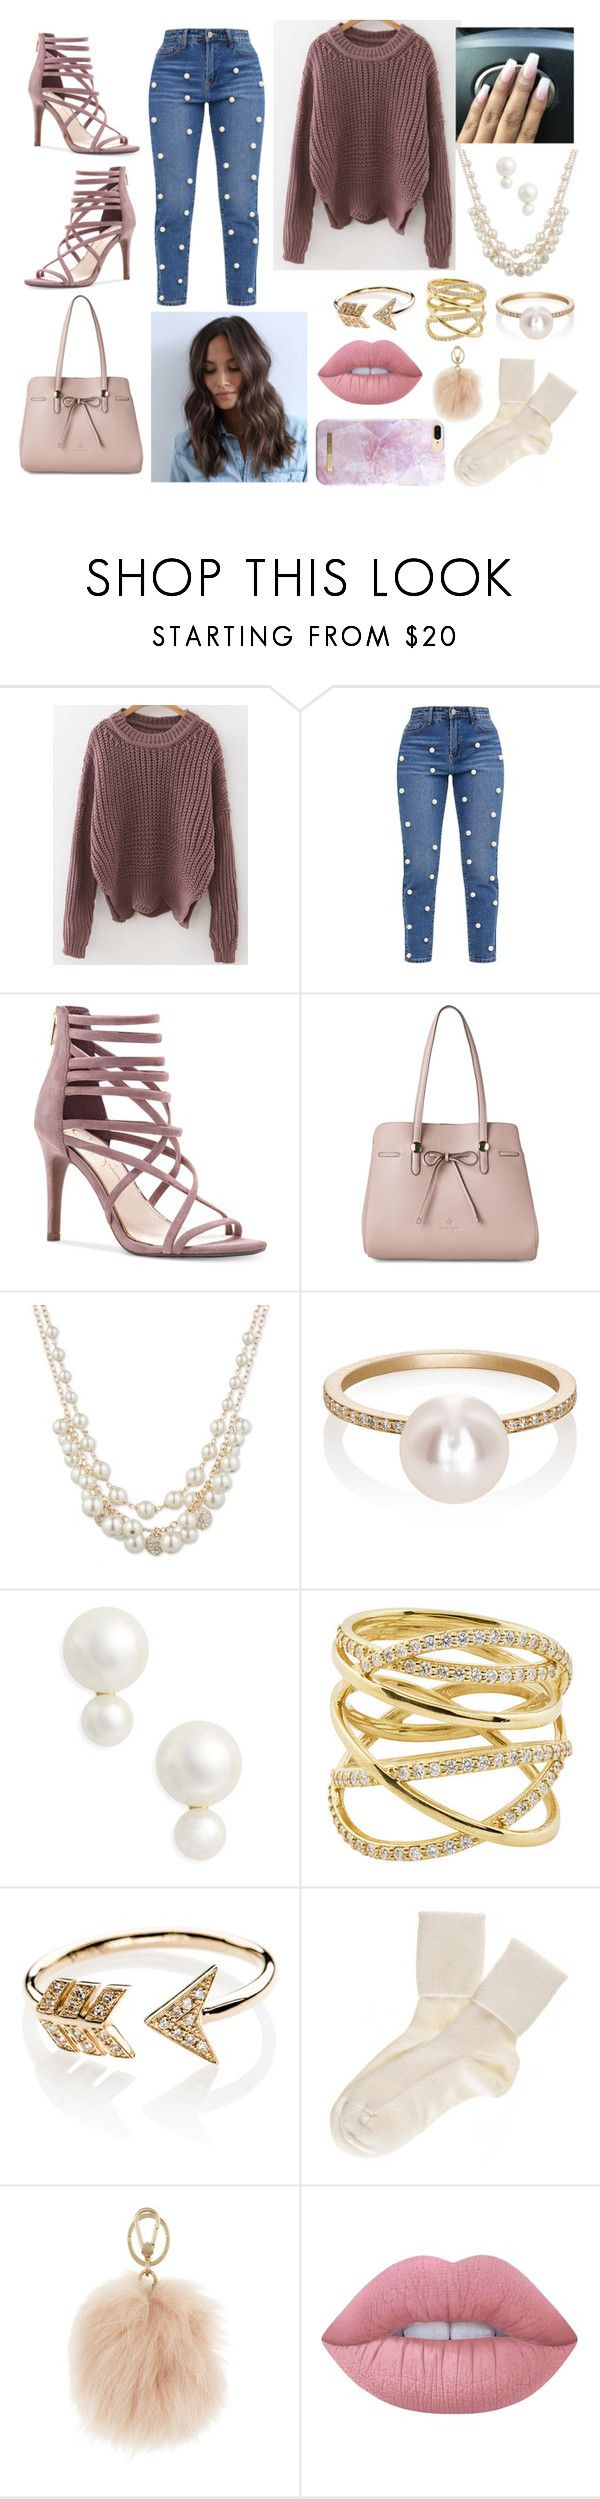 """Savannah"" by loveisablindwar on Polyvore featuring Jessica Simpson, Nanette Lepore, Anne Klein, Sophie Bille Brahe, Kate Spade, Lana, EF Collection, Black, Furla and Lime Crime"